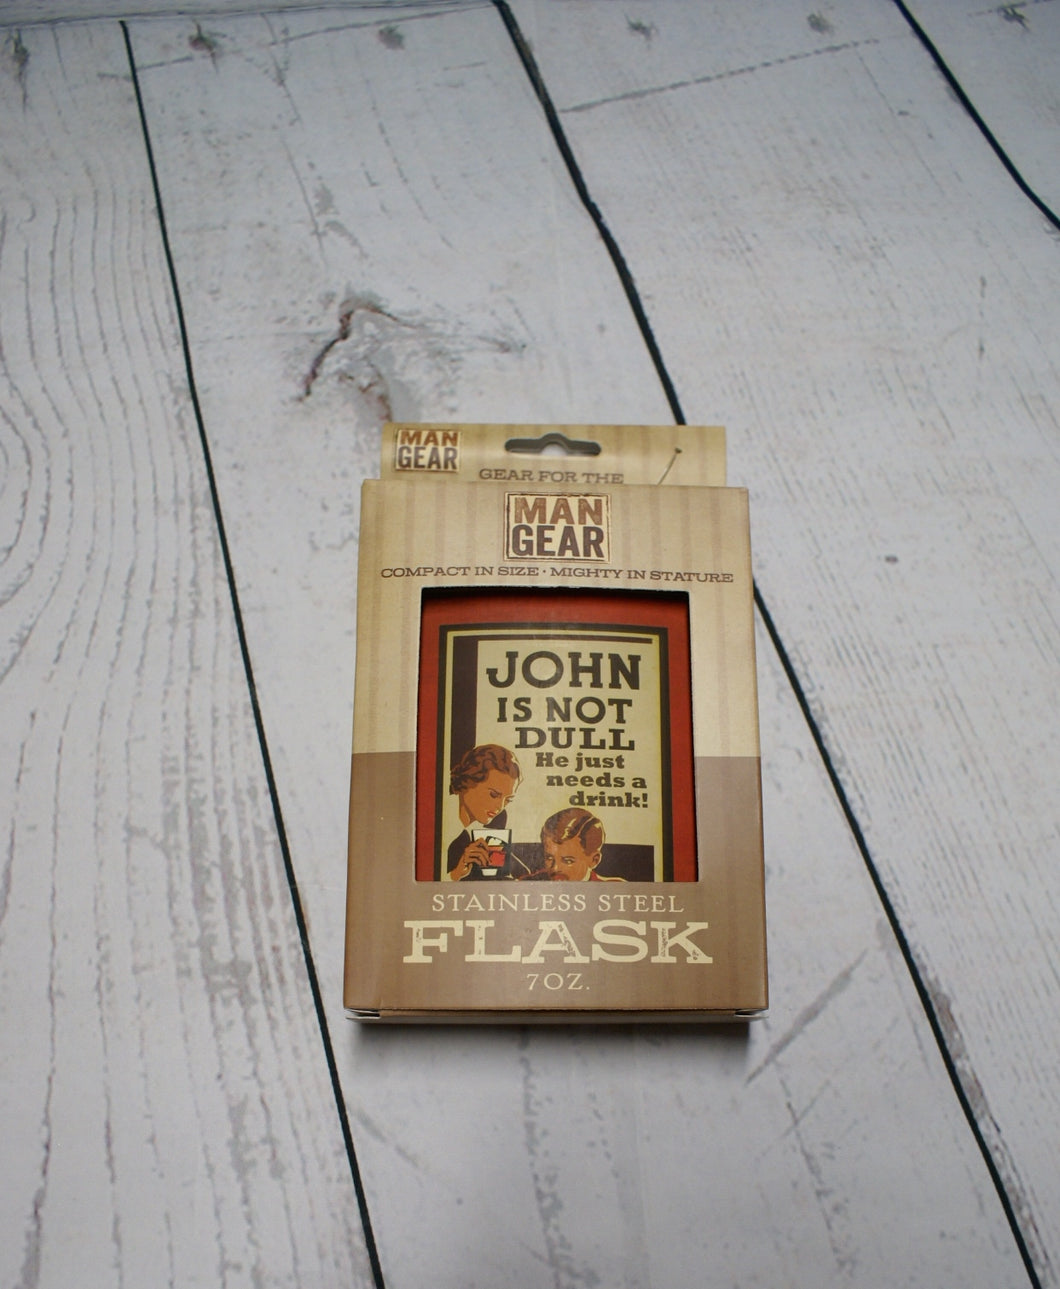 John Stainless Steel Flask